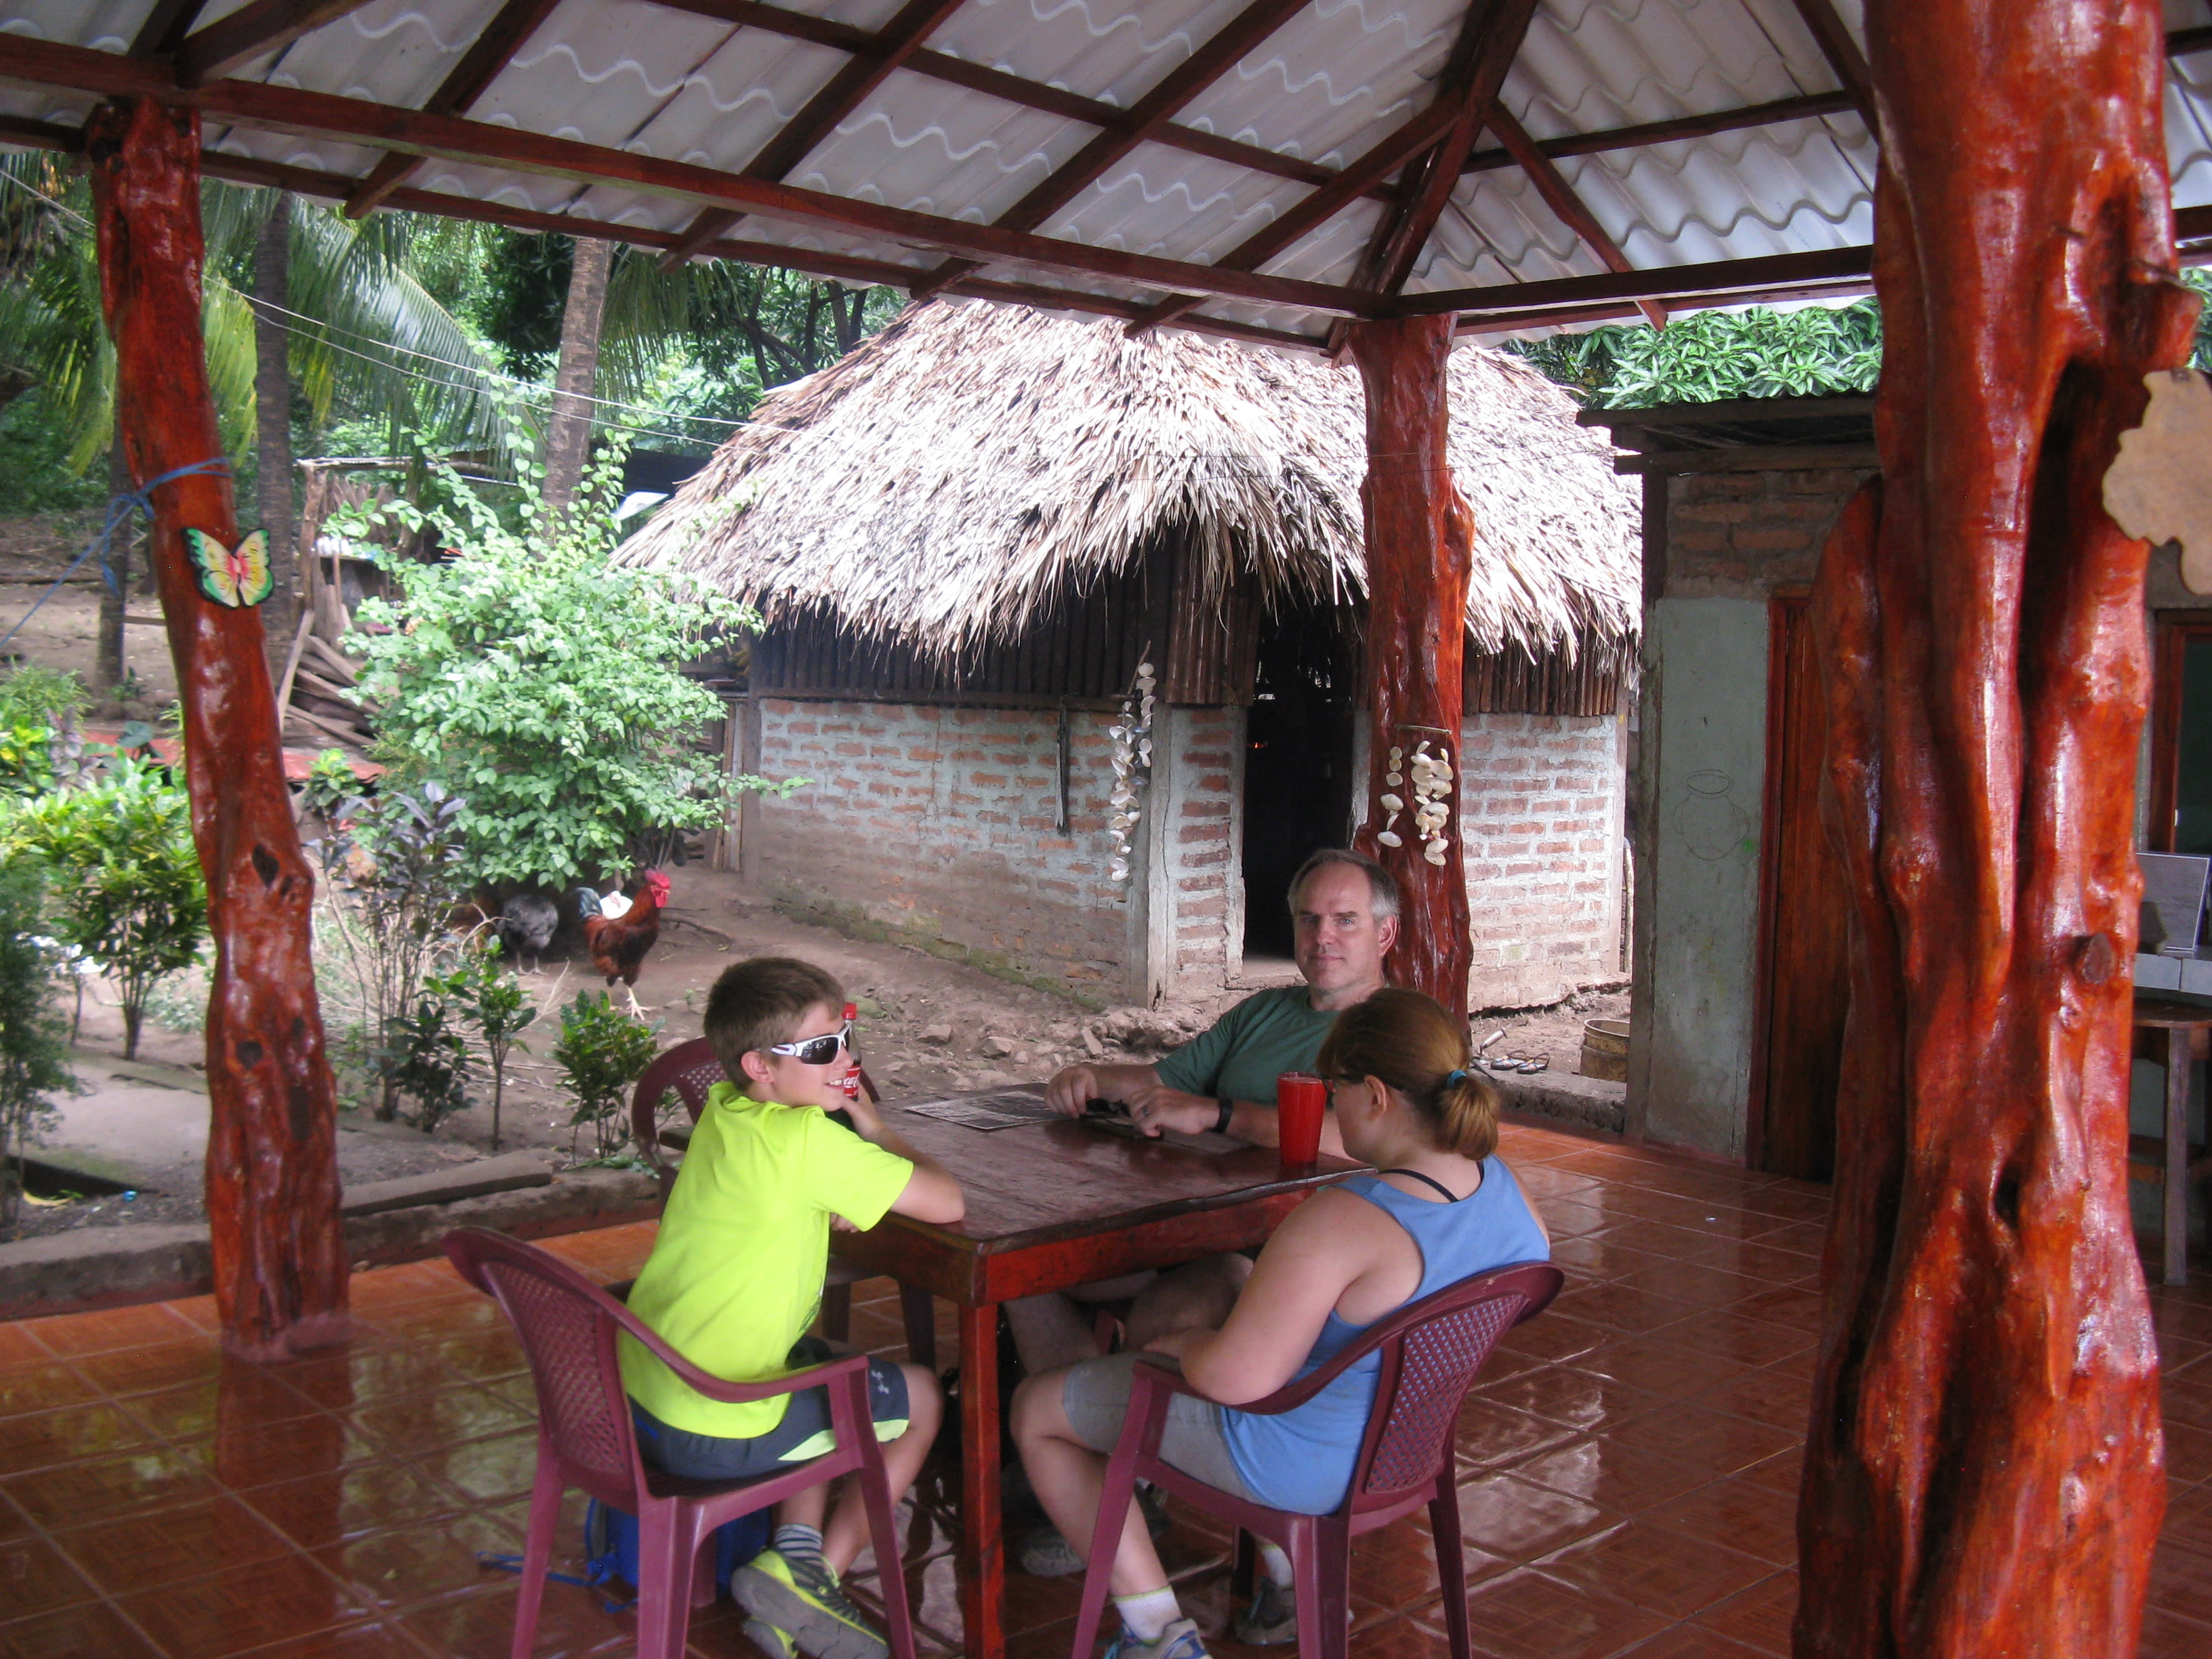 At Comedor, a typical Ometepe restaurant